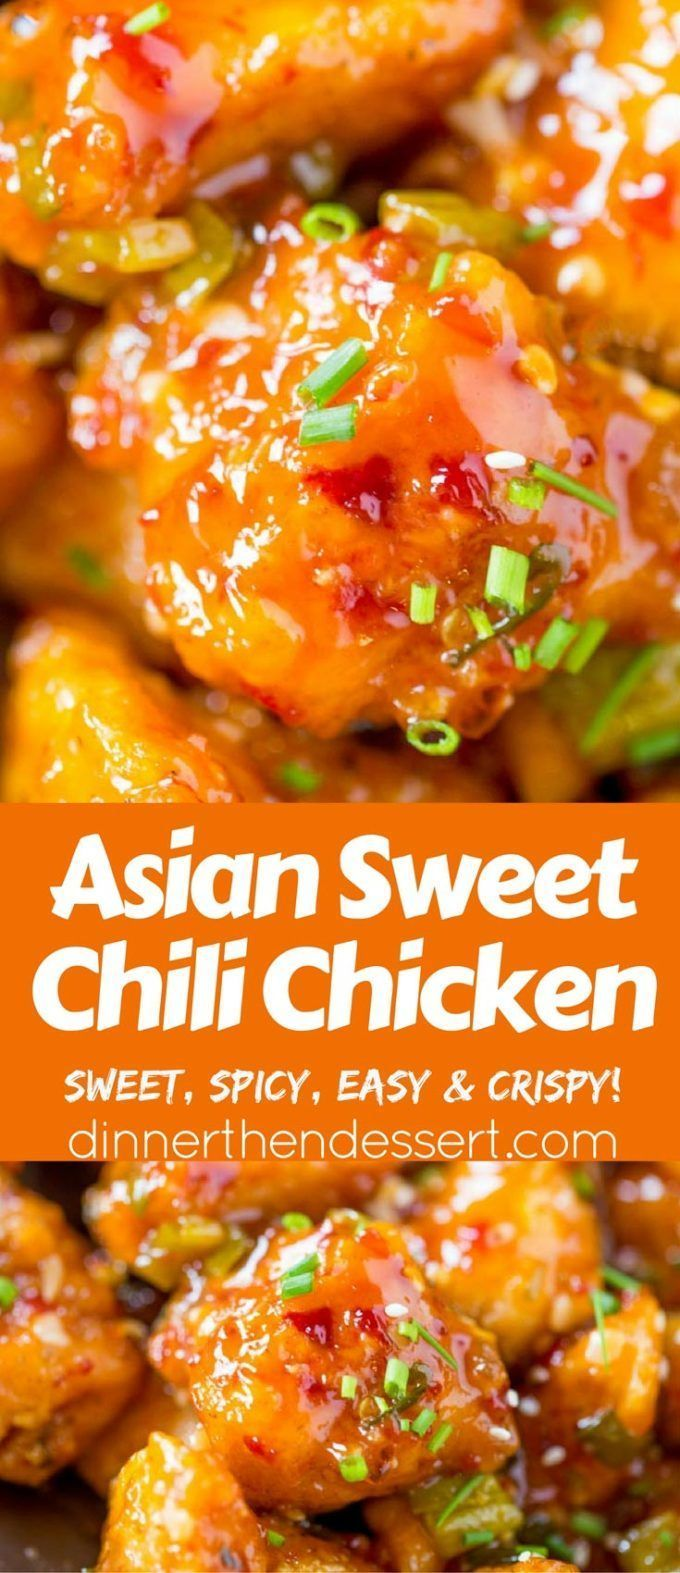 Asian Sweet Chili Chicken is so crispy, sticky, sweet, slightly spicy and completely addicting you won't even miss your favorite Asian takeout. @eatsnsweets